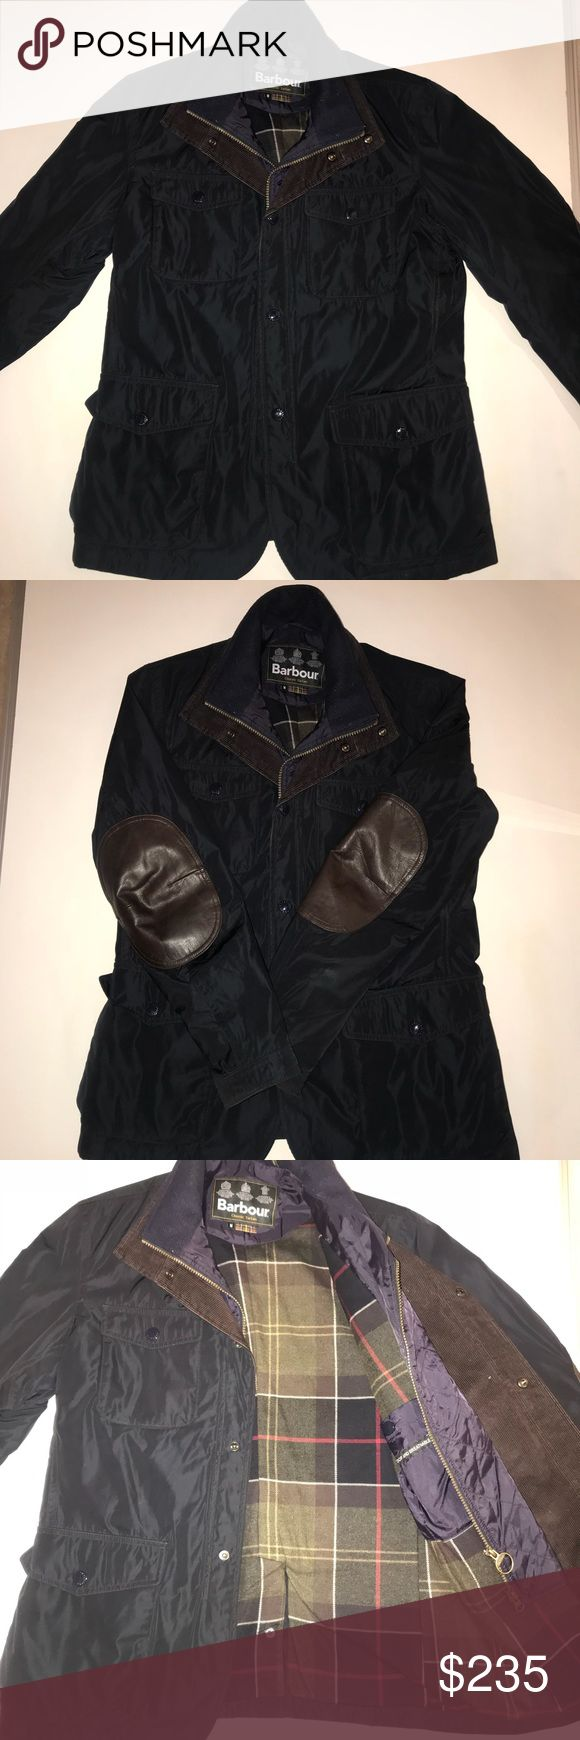 AUTHENTIC Barbour Men's Classic Tartan Jacket AUTHENTIC! Perfect condition, authentic, navy blue men's Barbour jacket. The style is the Original Tartan. This is men's, but lt can honestly be considered gender neutral. Size M. If you would like to see lt on, please let me know! Barbour Jackets & Coats